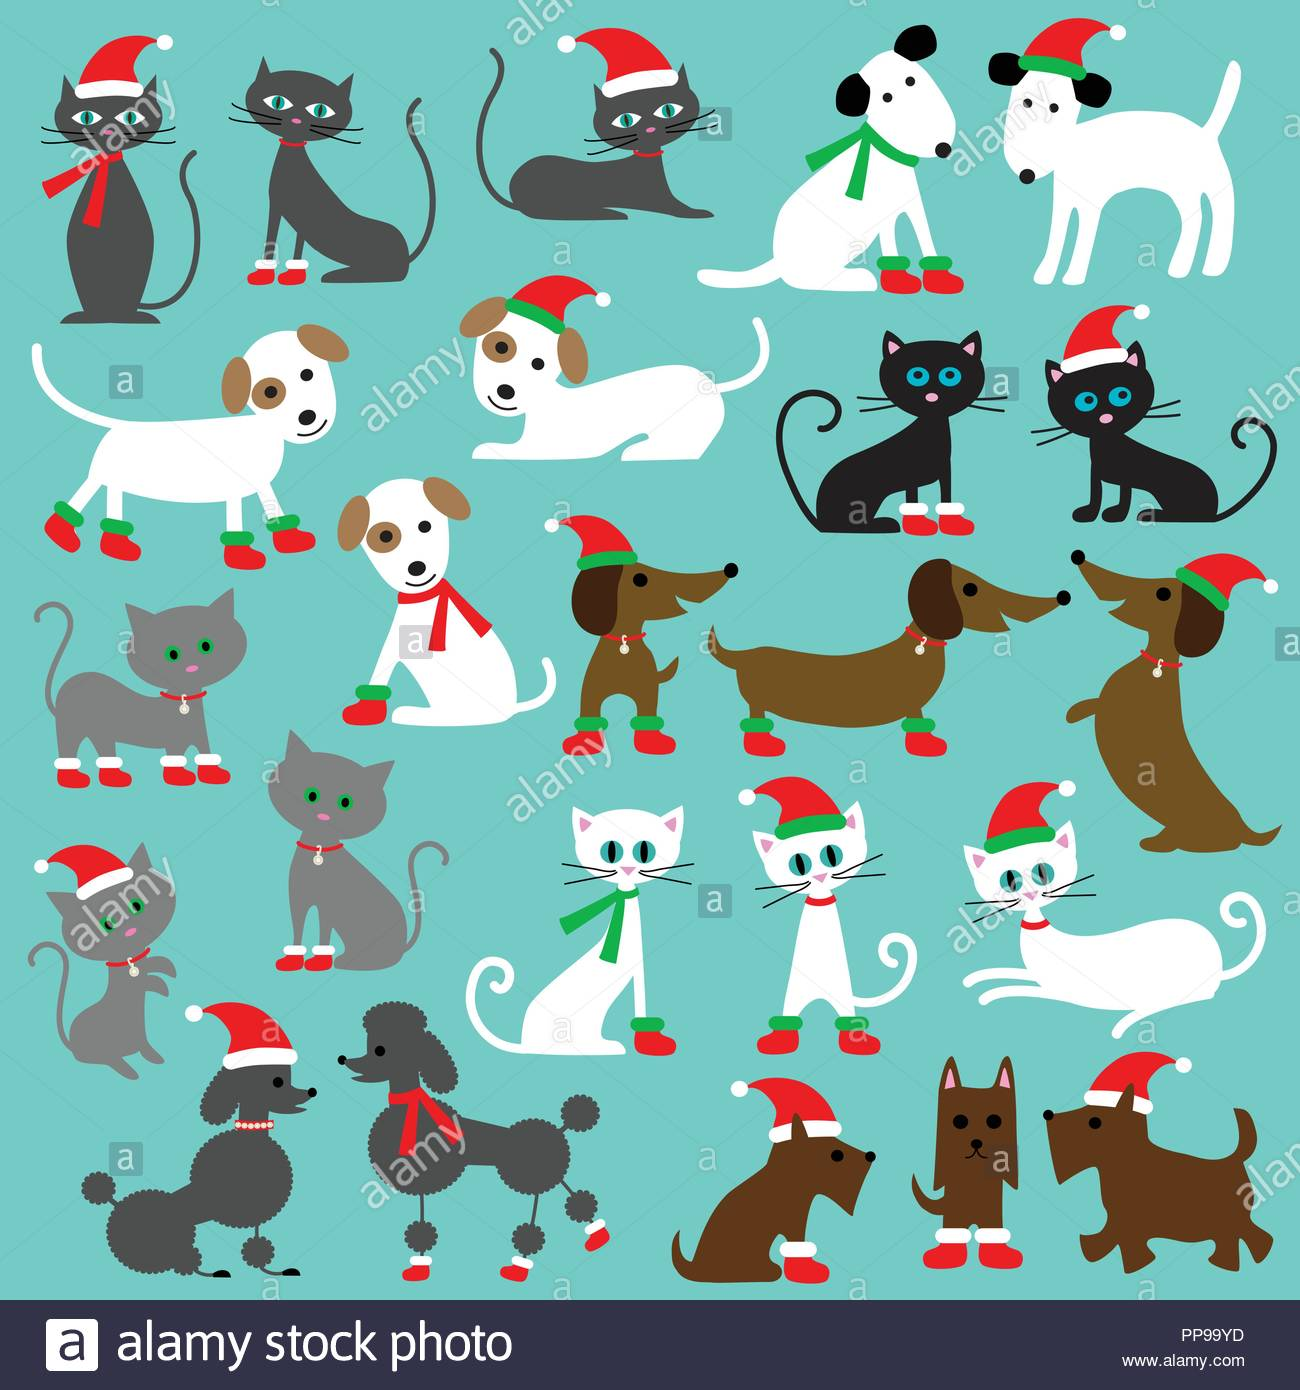 Christmas Cats And Dogs Clipart Graphics Stock Vector Art